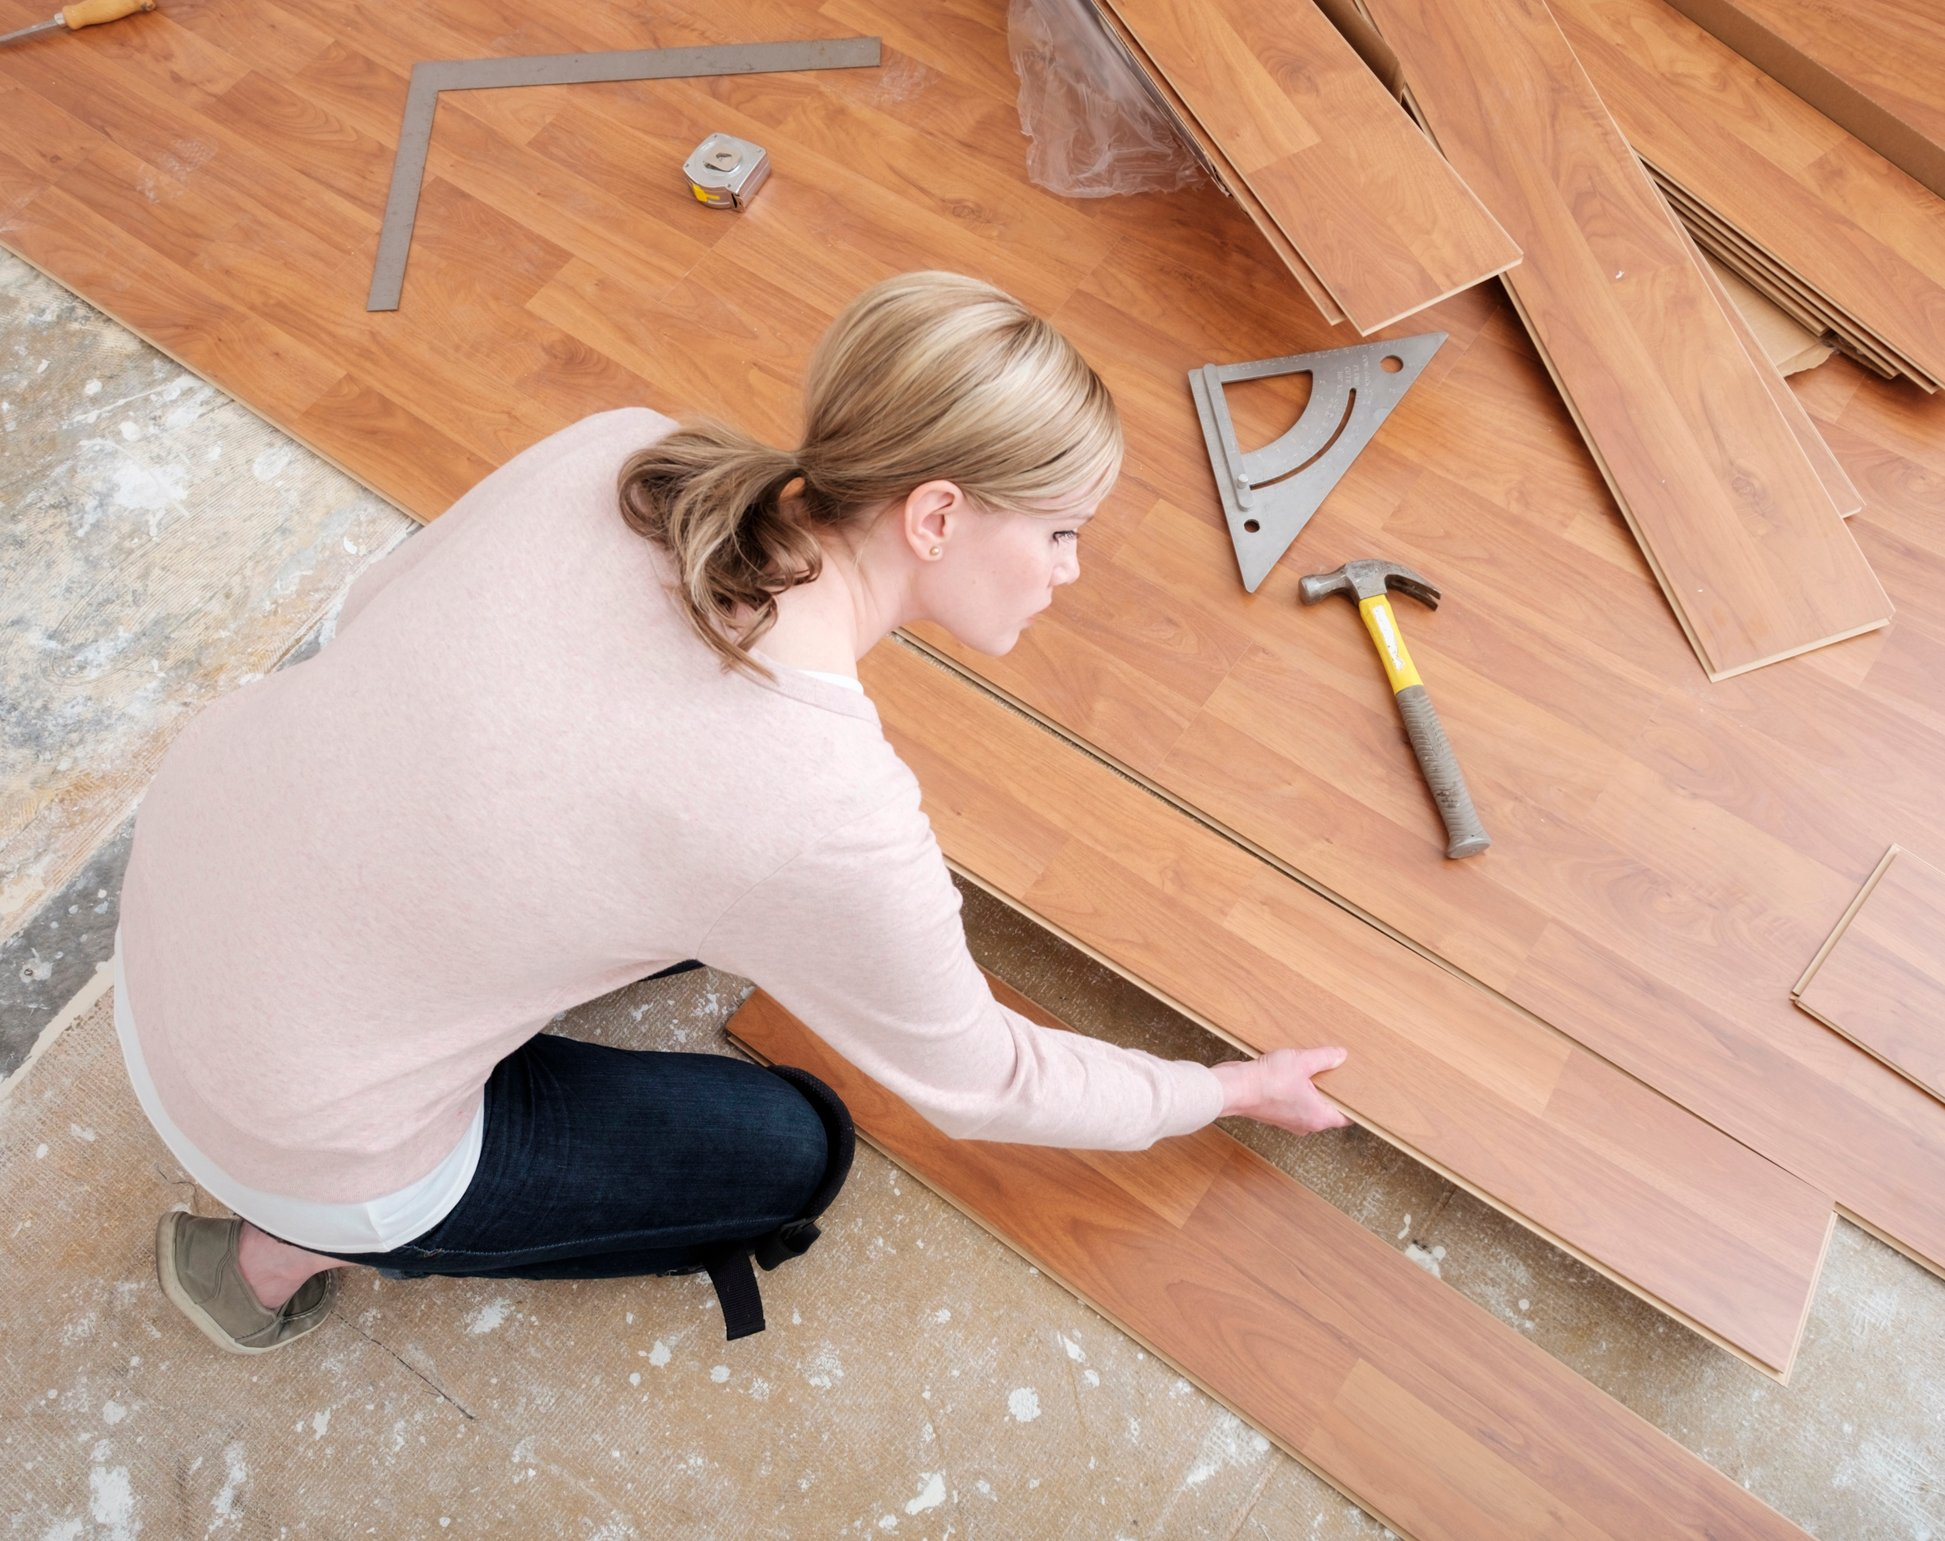 A woman working in her home on a do-it-yourself project installing laminate wood flooring. She is placing the board, as seen from above.